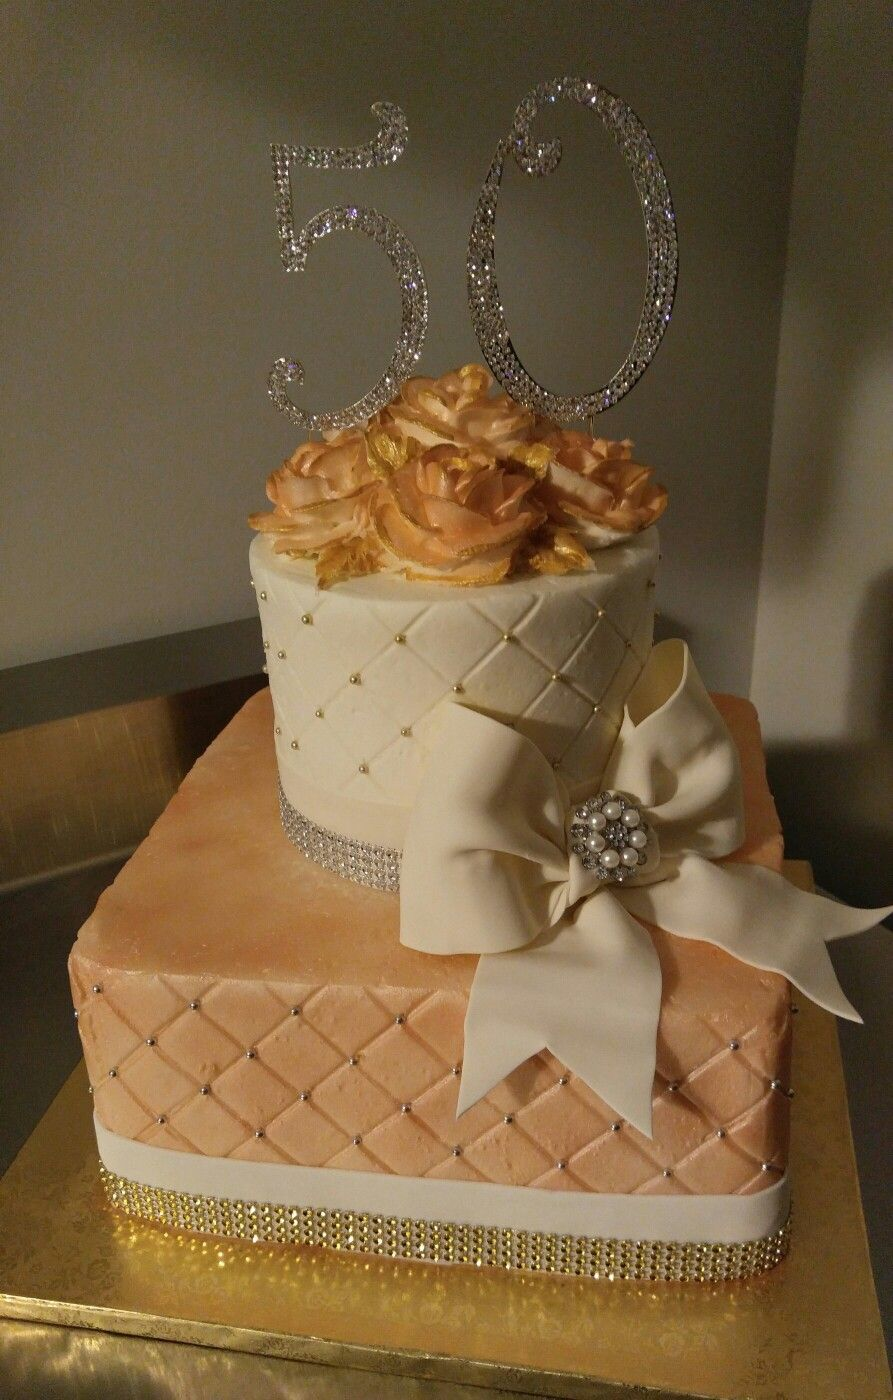 Sparkly Rose Gold 50th Birthday Cake VintageBakery 803 386 8806